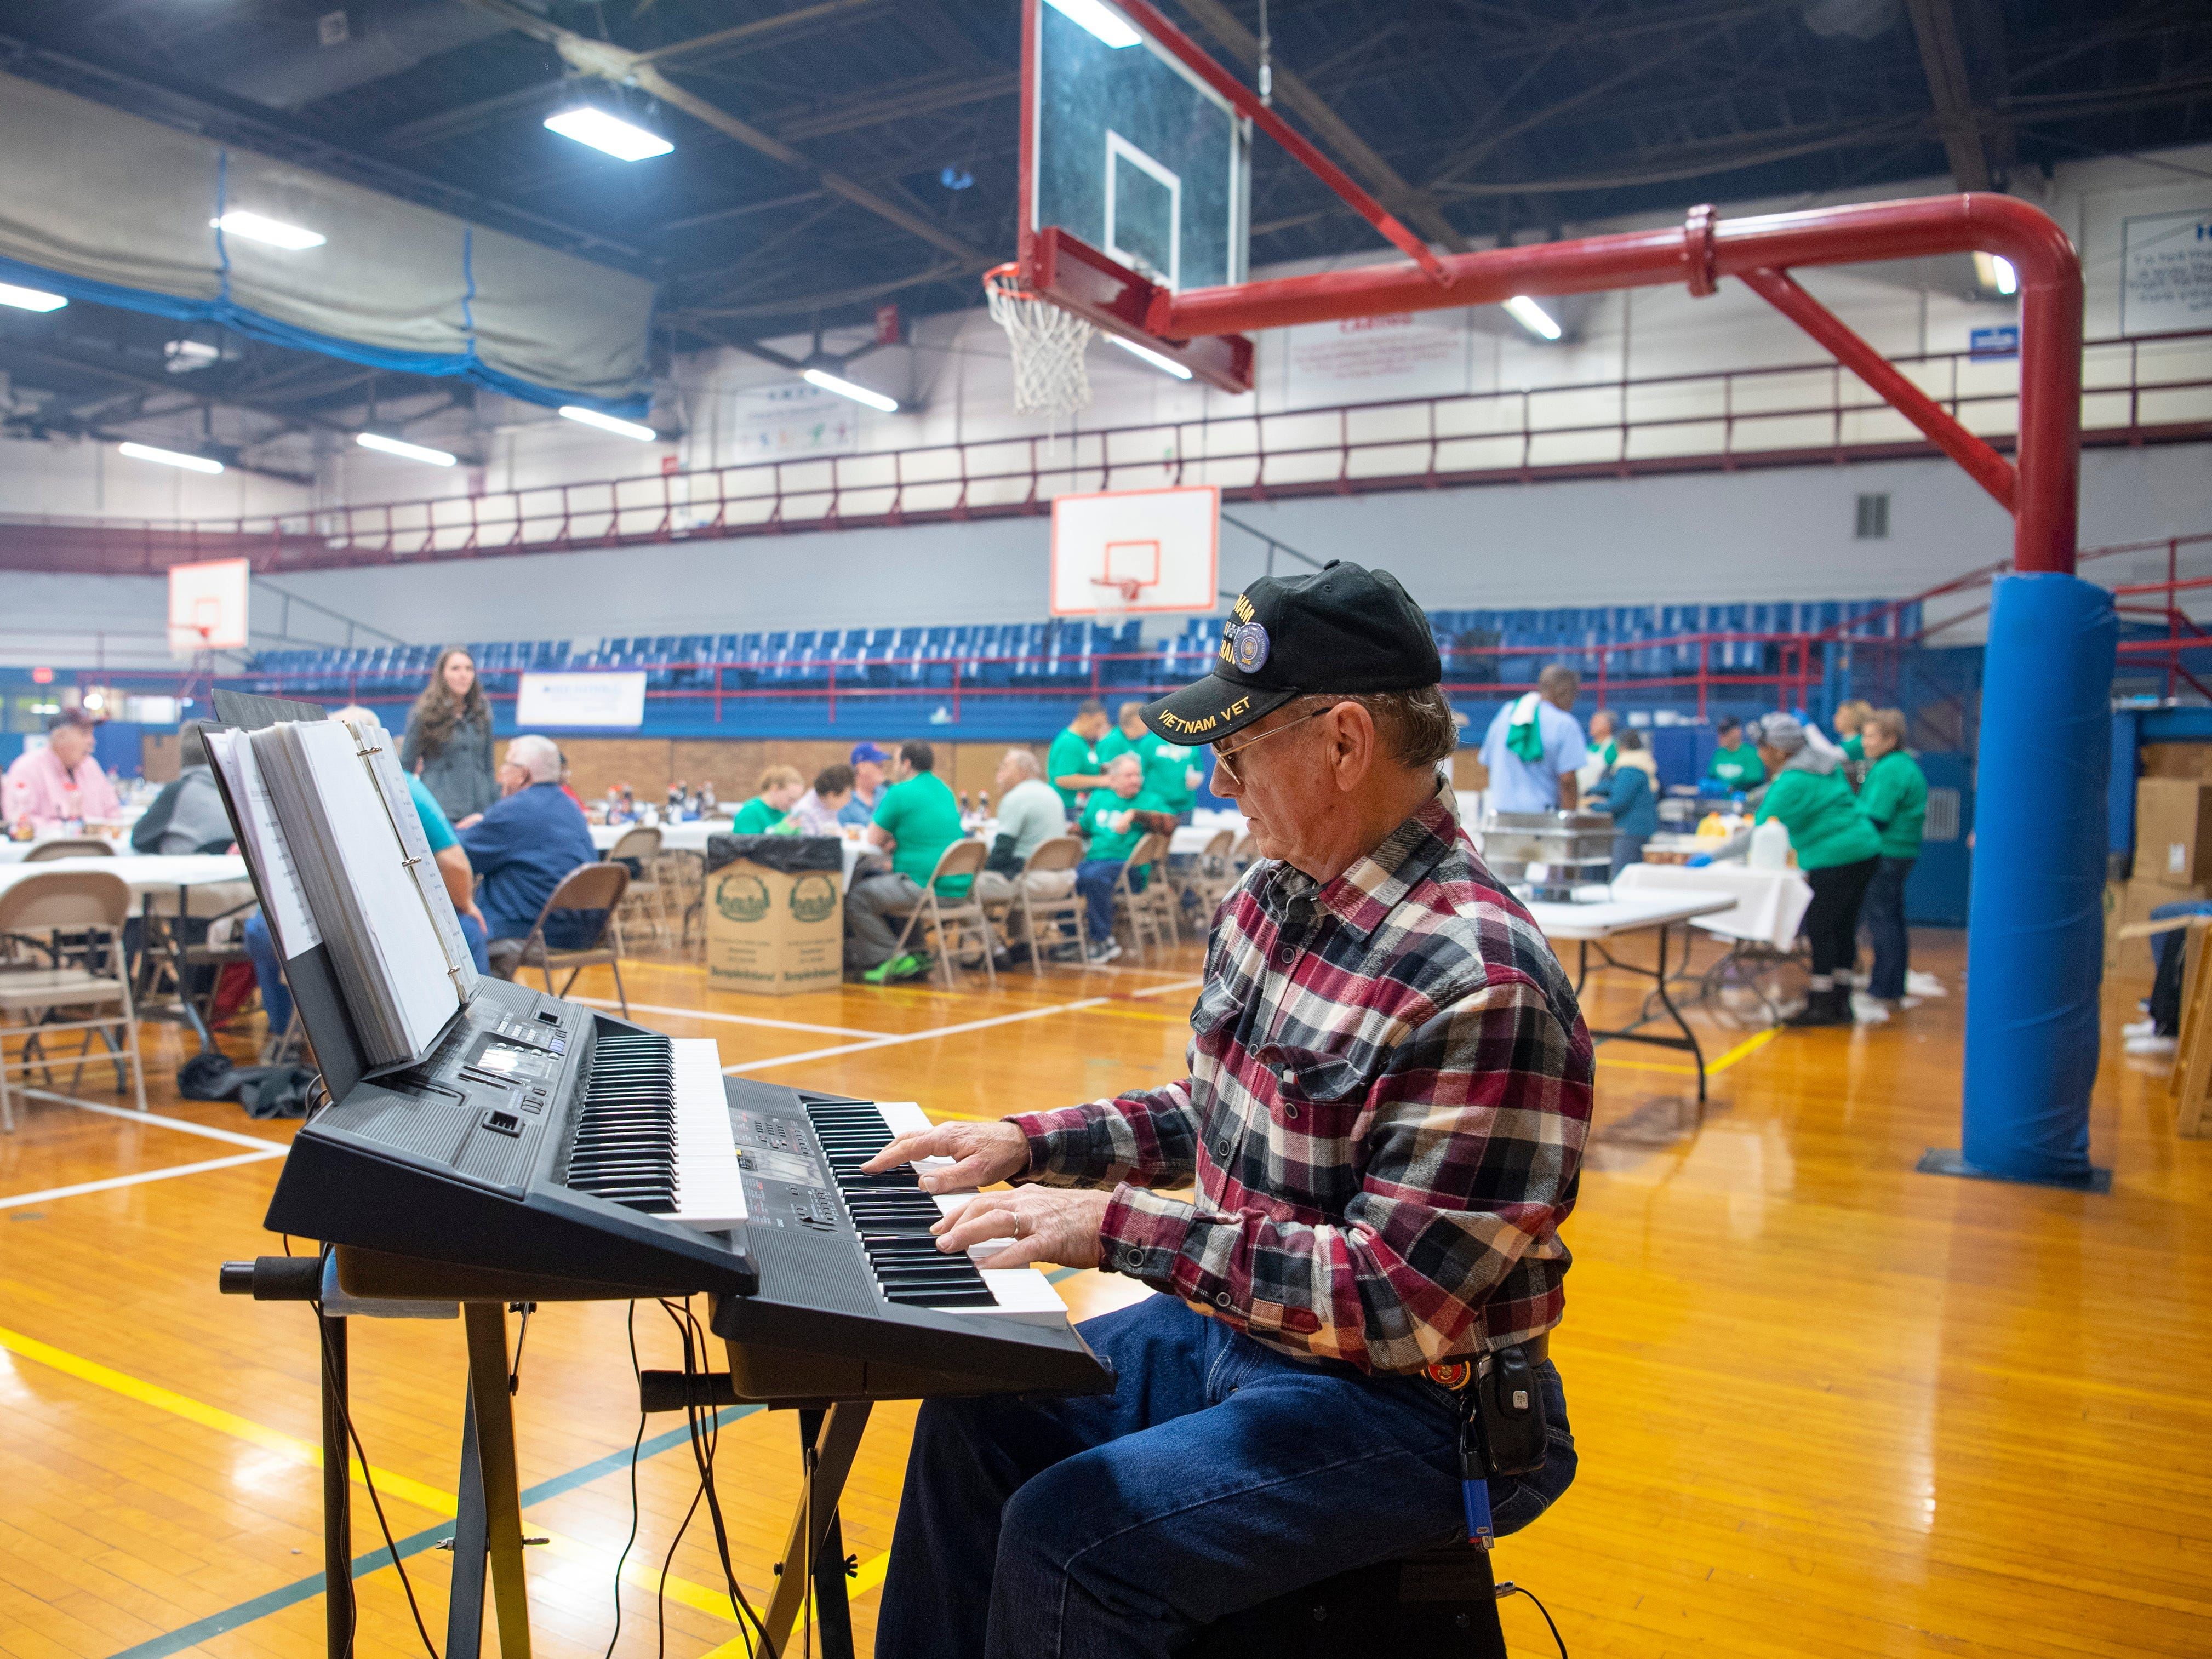 """Gary Coffman of Evansville has been entertaining YMCA visitors since the 1960s when he played an old Hammond organ. Coffman played hits like """"The Girl from Ipanema"""" and """"Somewhere Over the Rainbow."""""""